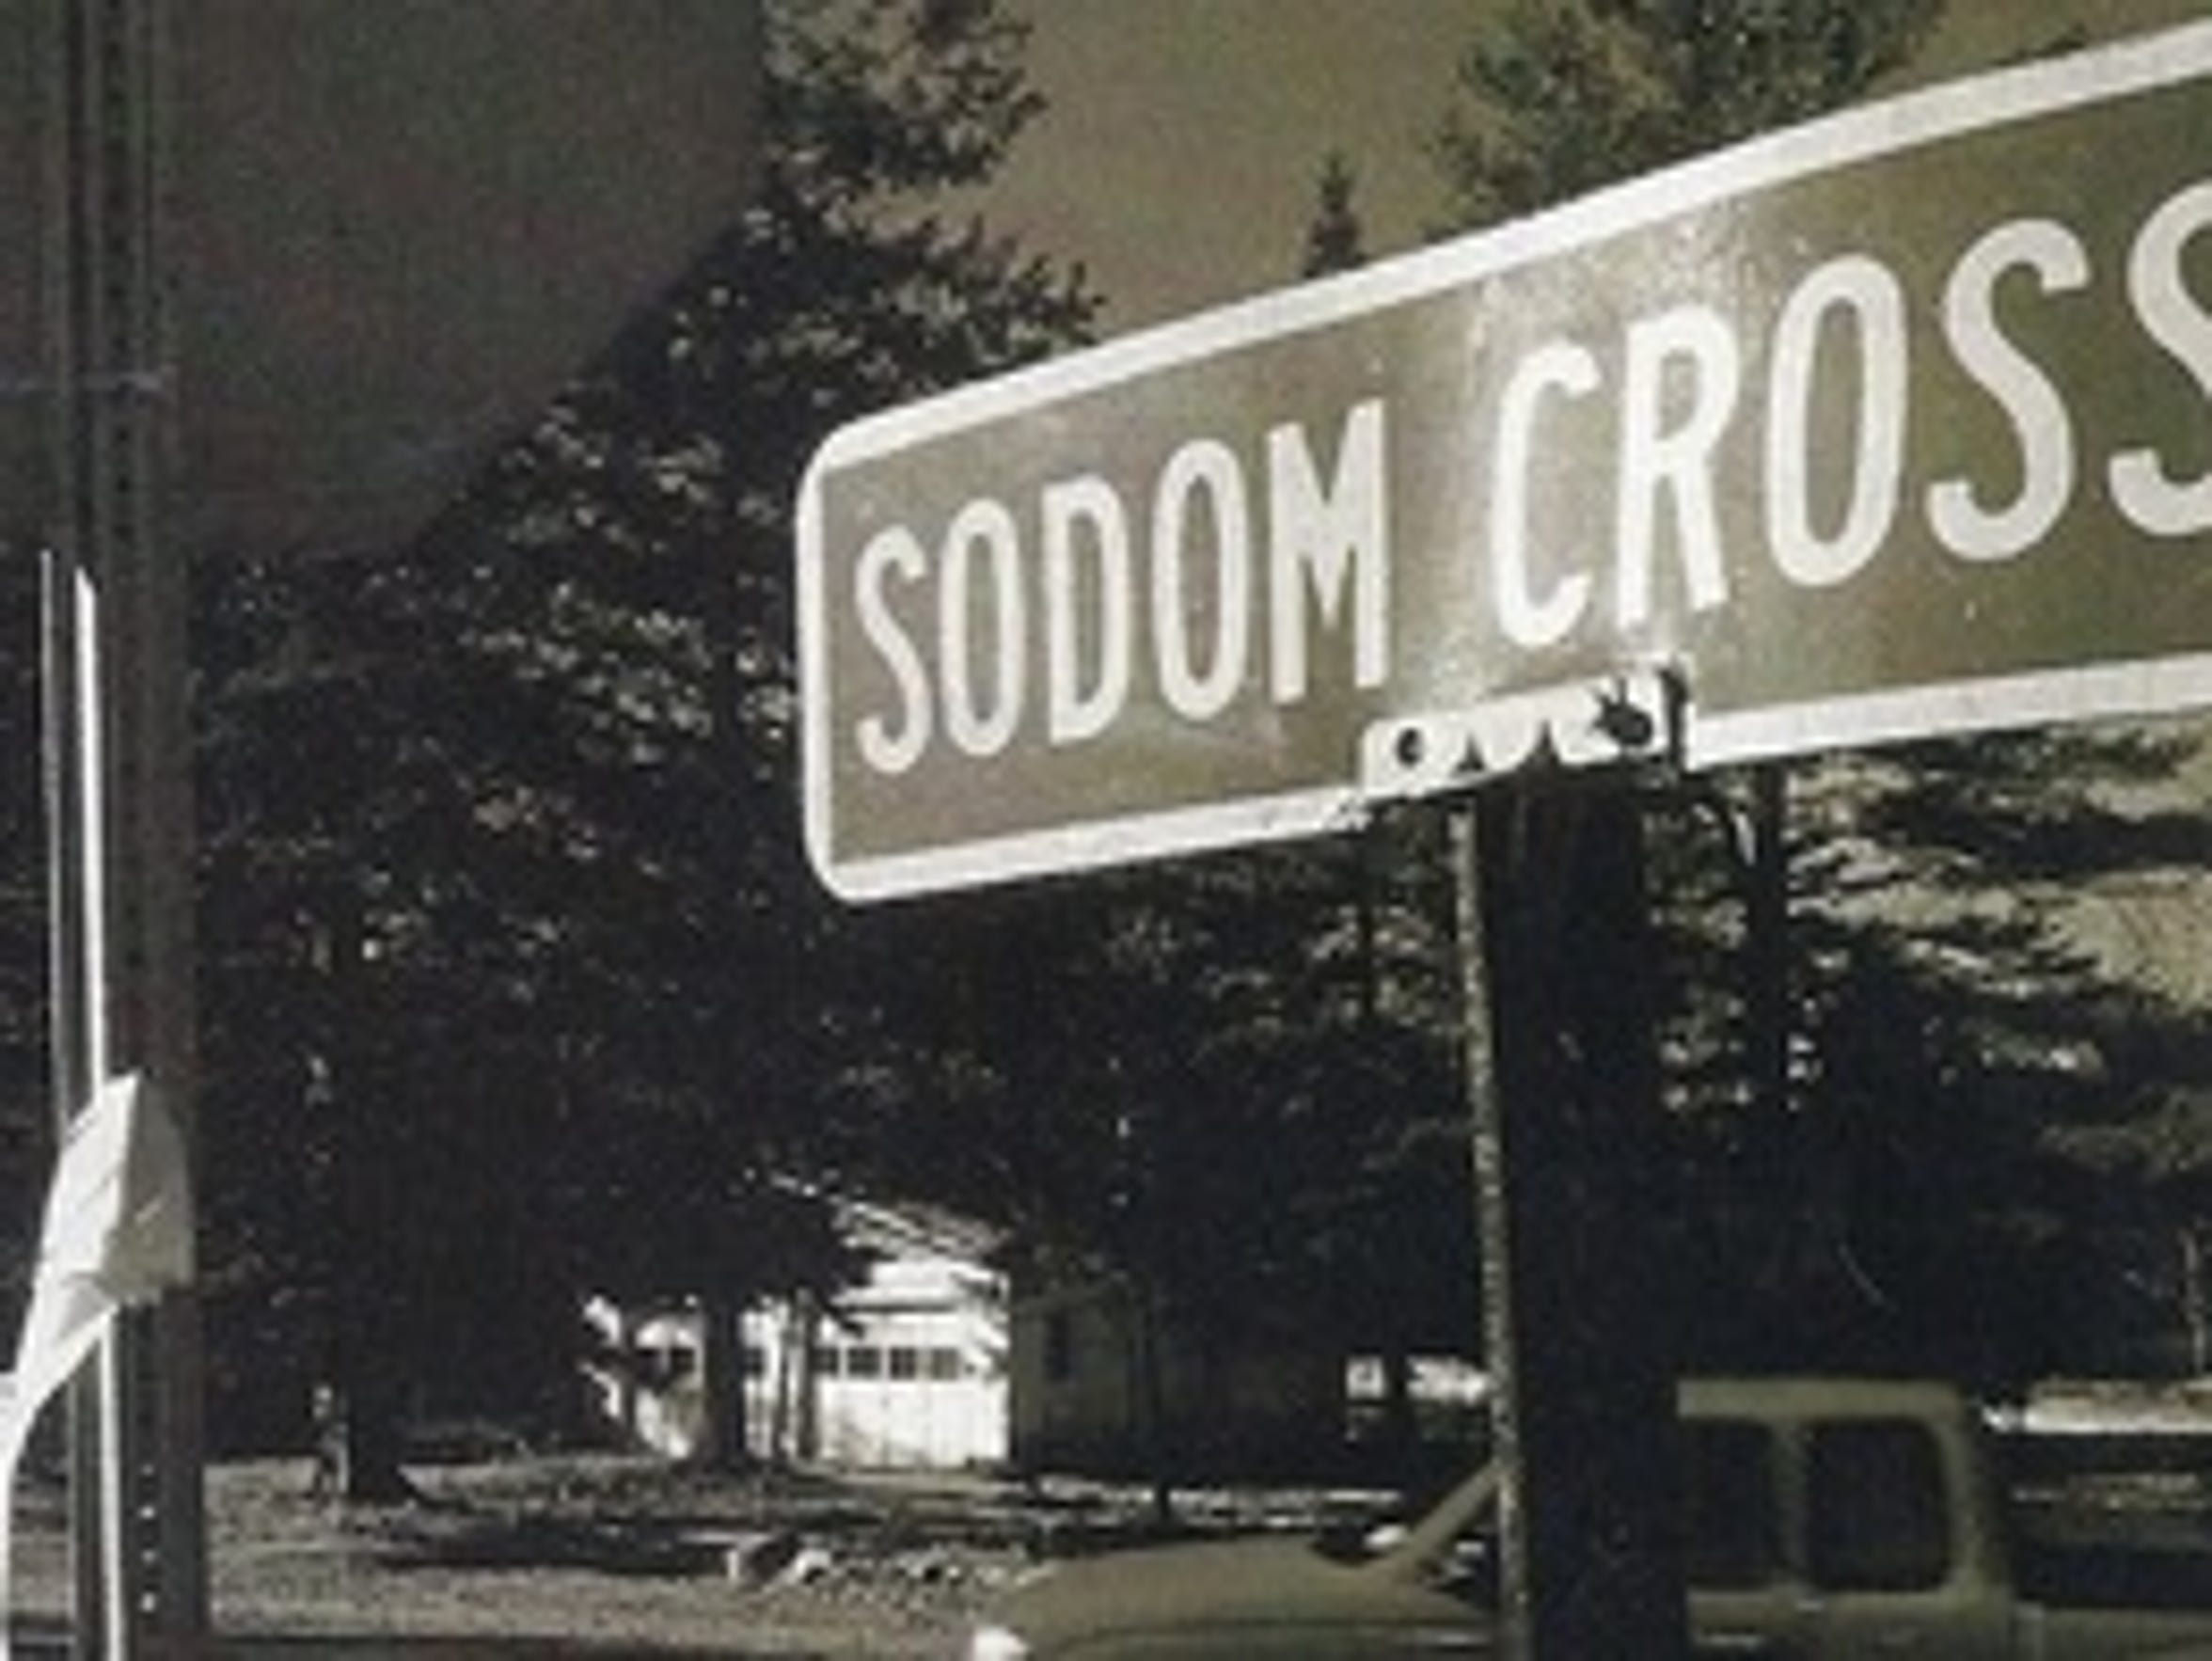 Sodom Cross Road, a remnant of the Warren County settlement